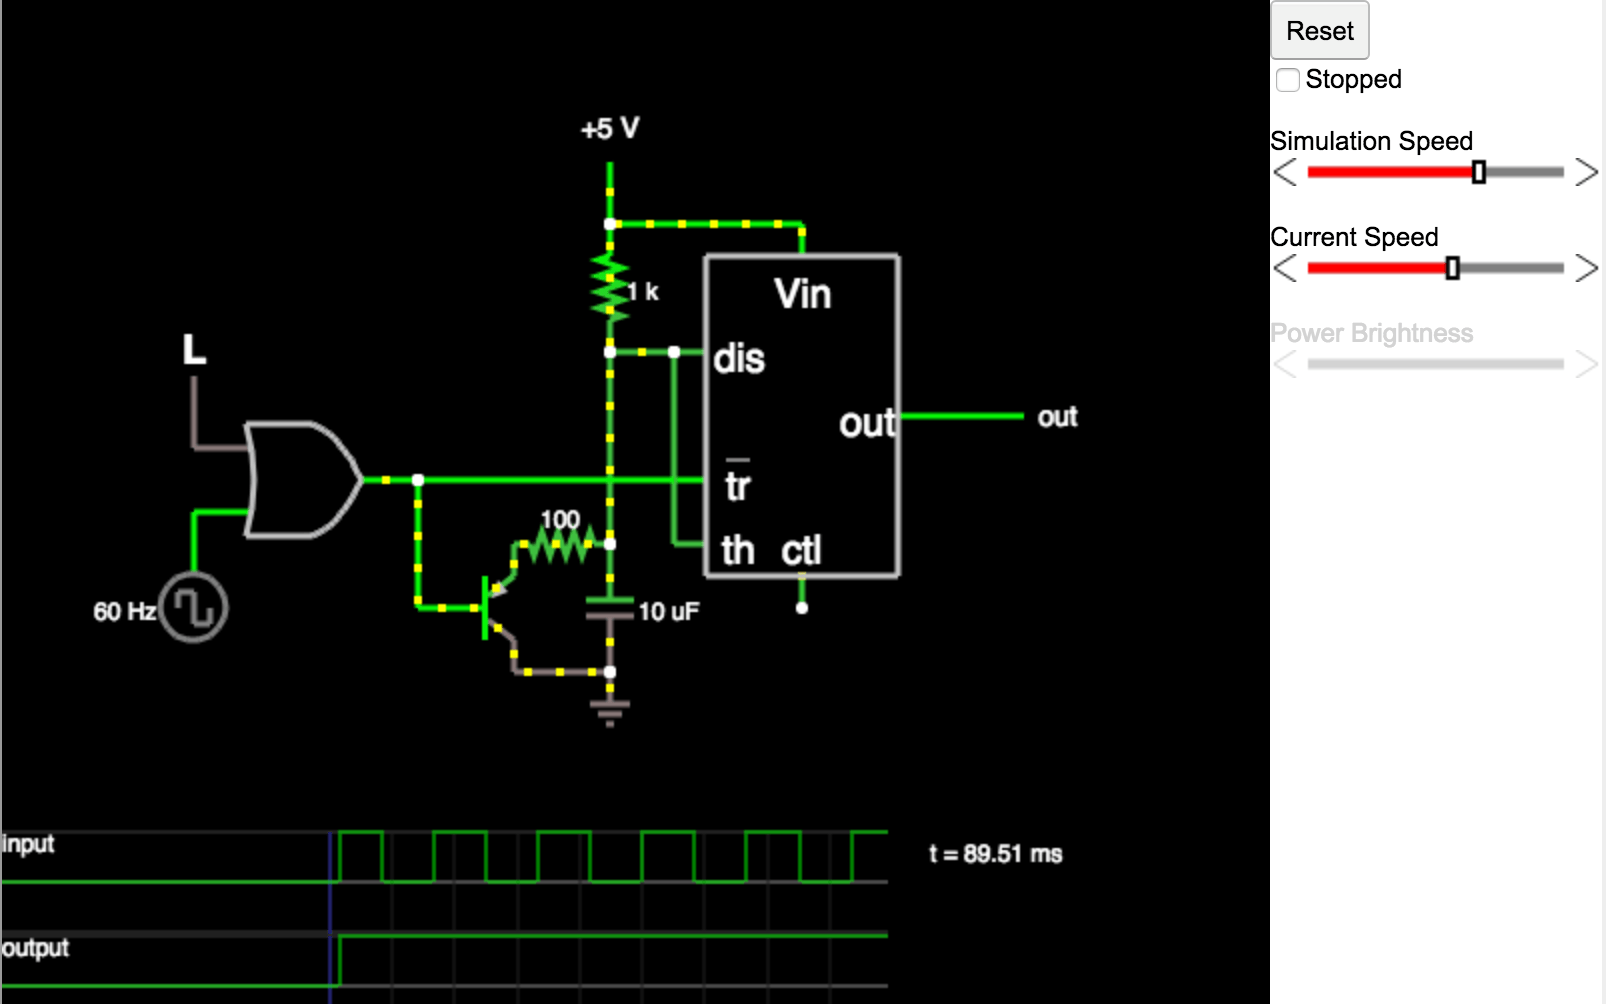 Design Circuits Easily With Web Based Circuit Simulator Projects Electronic For Kids Free Electronics Paul Falstad Created A Applet That Helps You Visualize Unlike Similar Apps This One Runs In The Browser